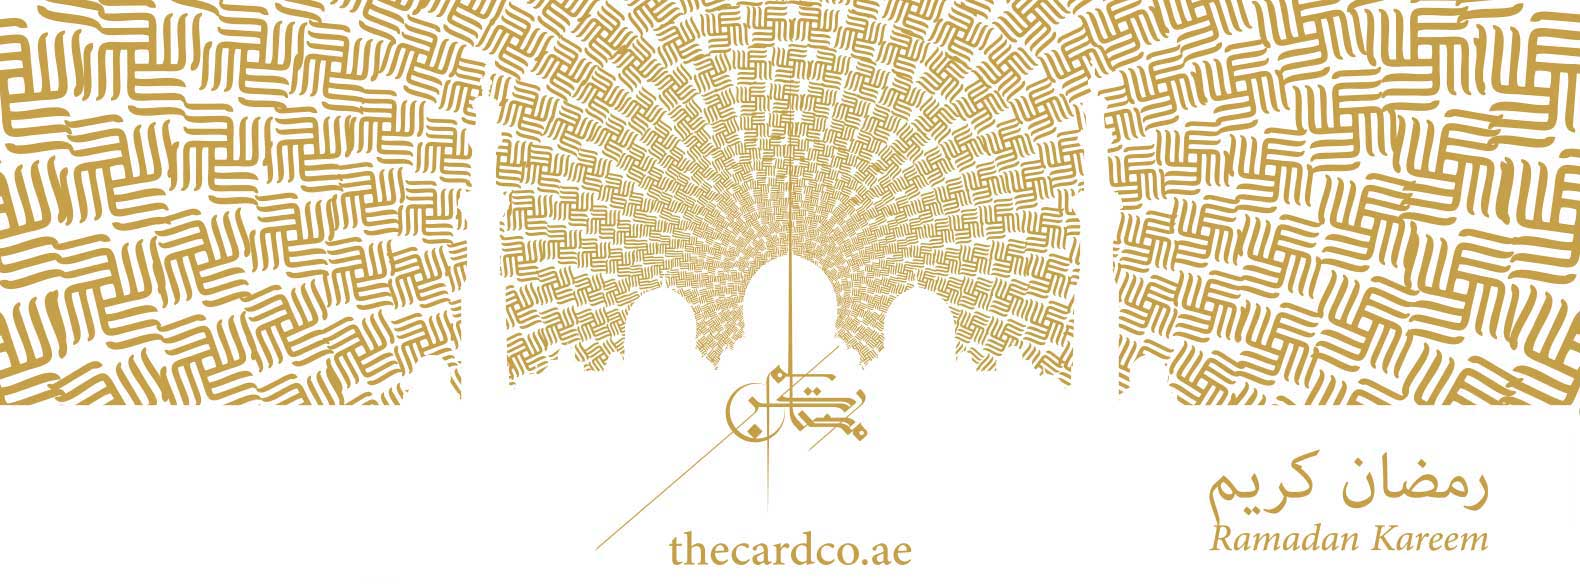 News The Card Co Experts In Bespoke Couture Handcrafted